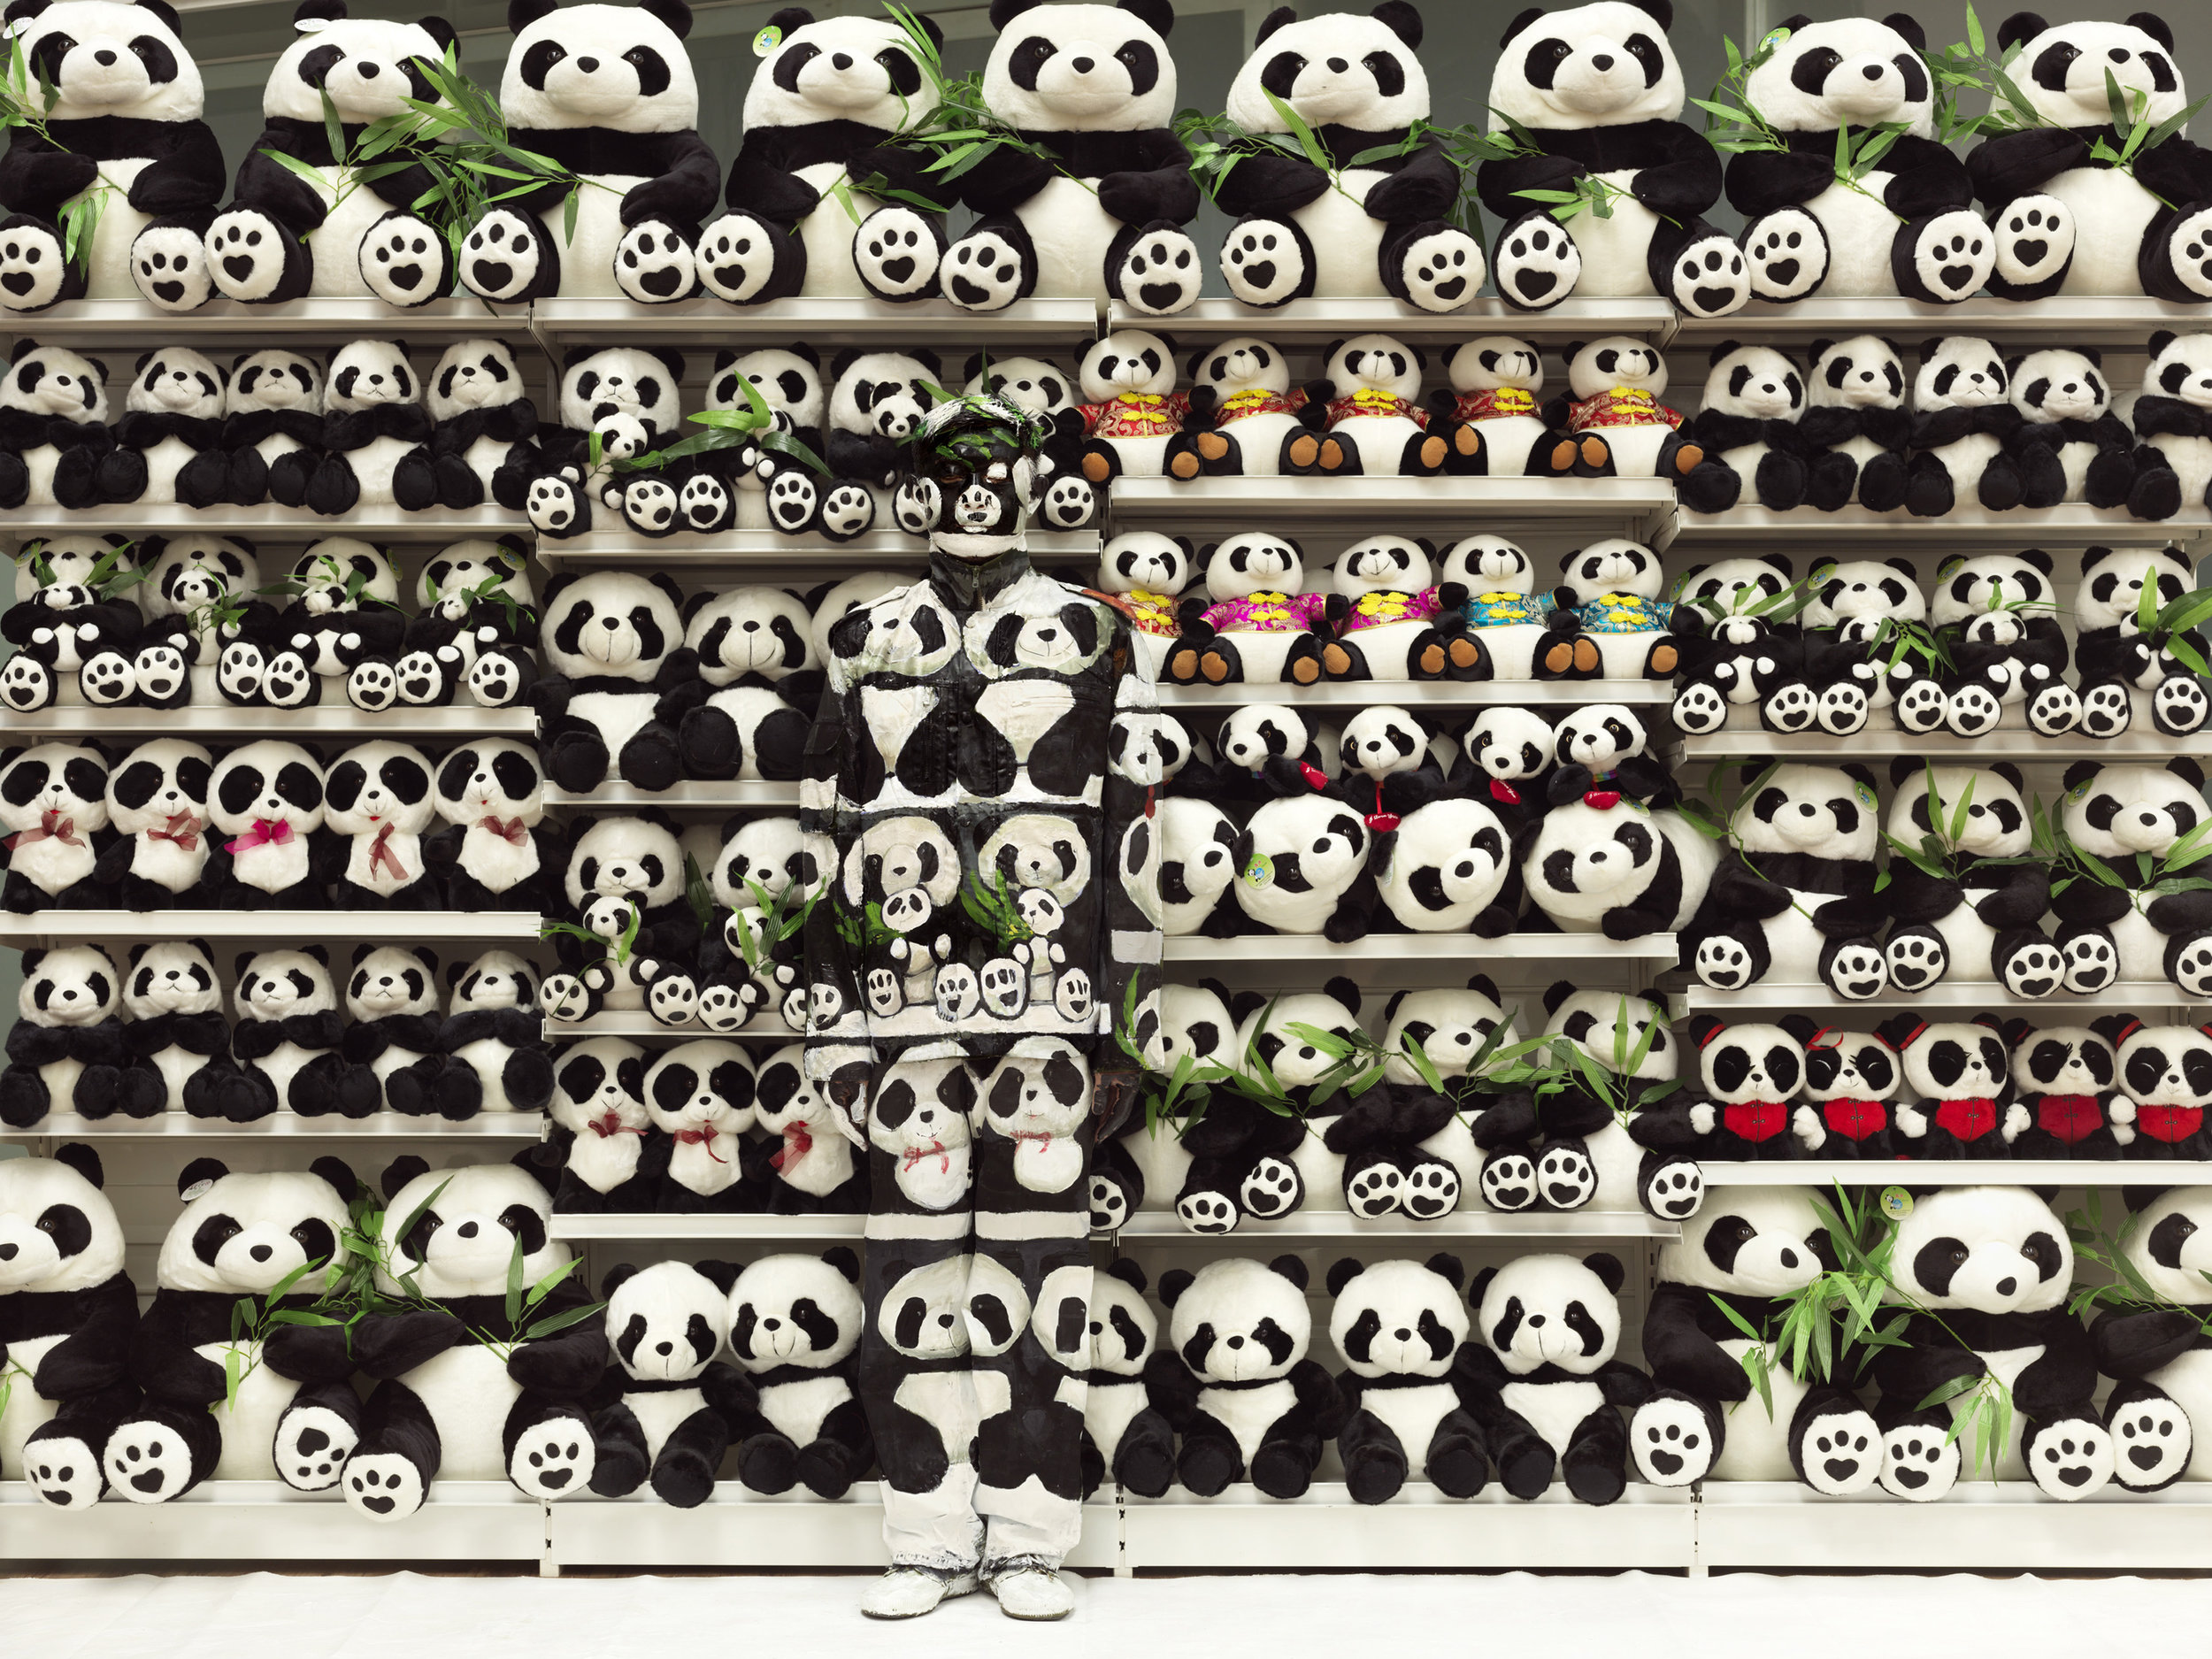 Liu Bolin,  Panda_Hiding in the City,  2011 | Courtesy Galerie Paris-Beijing